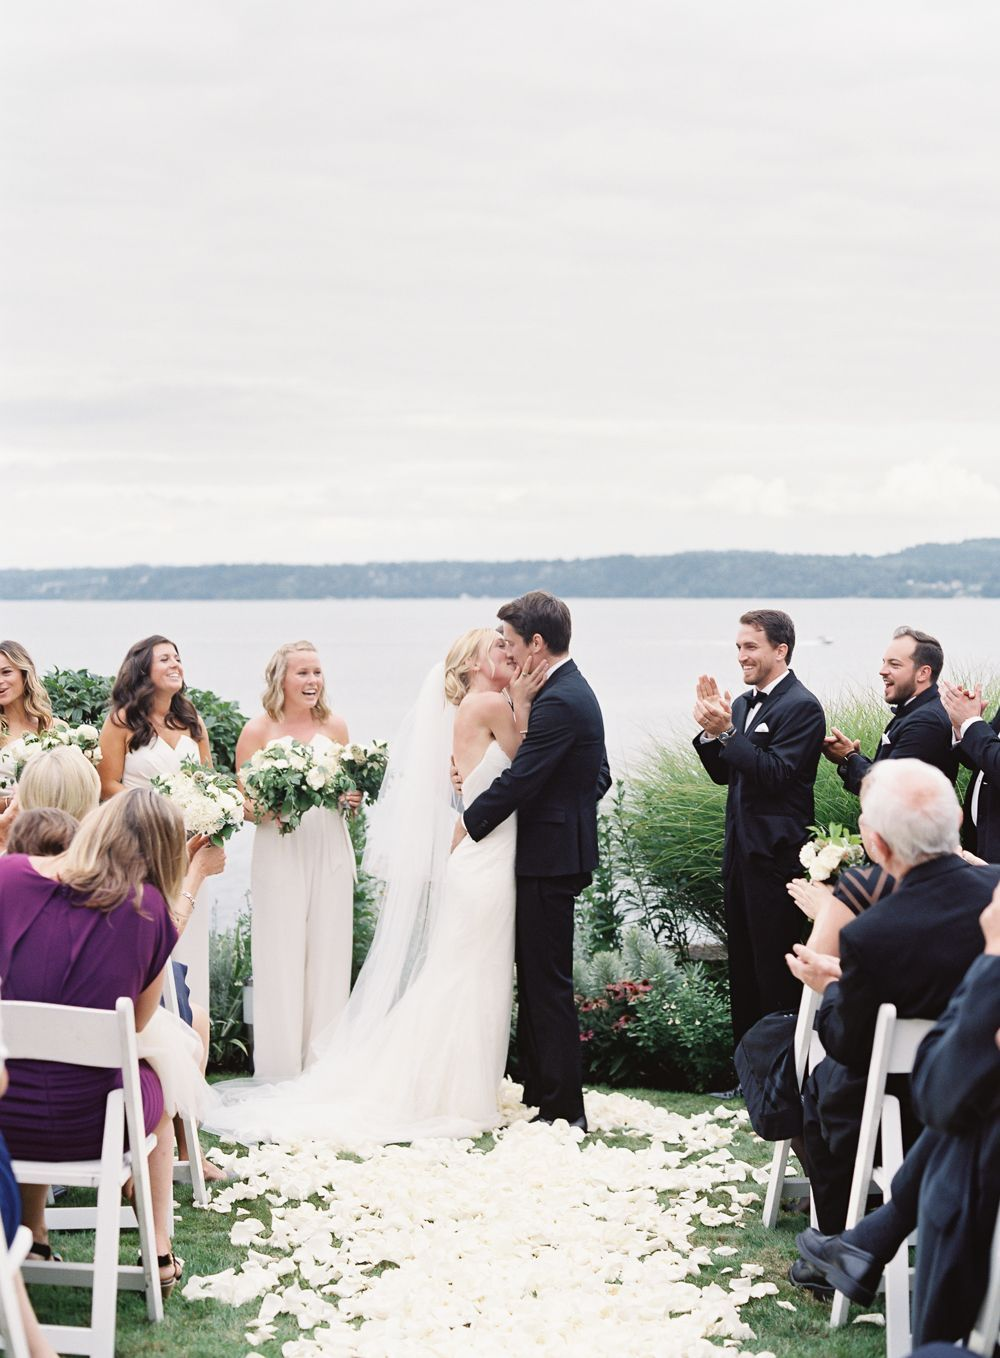 7-romantic-beach-wedding-ceremony